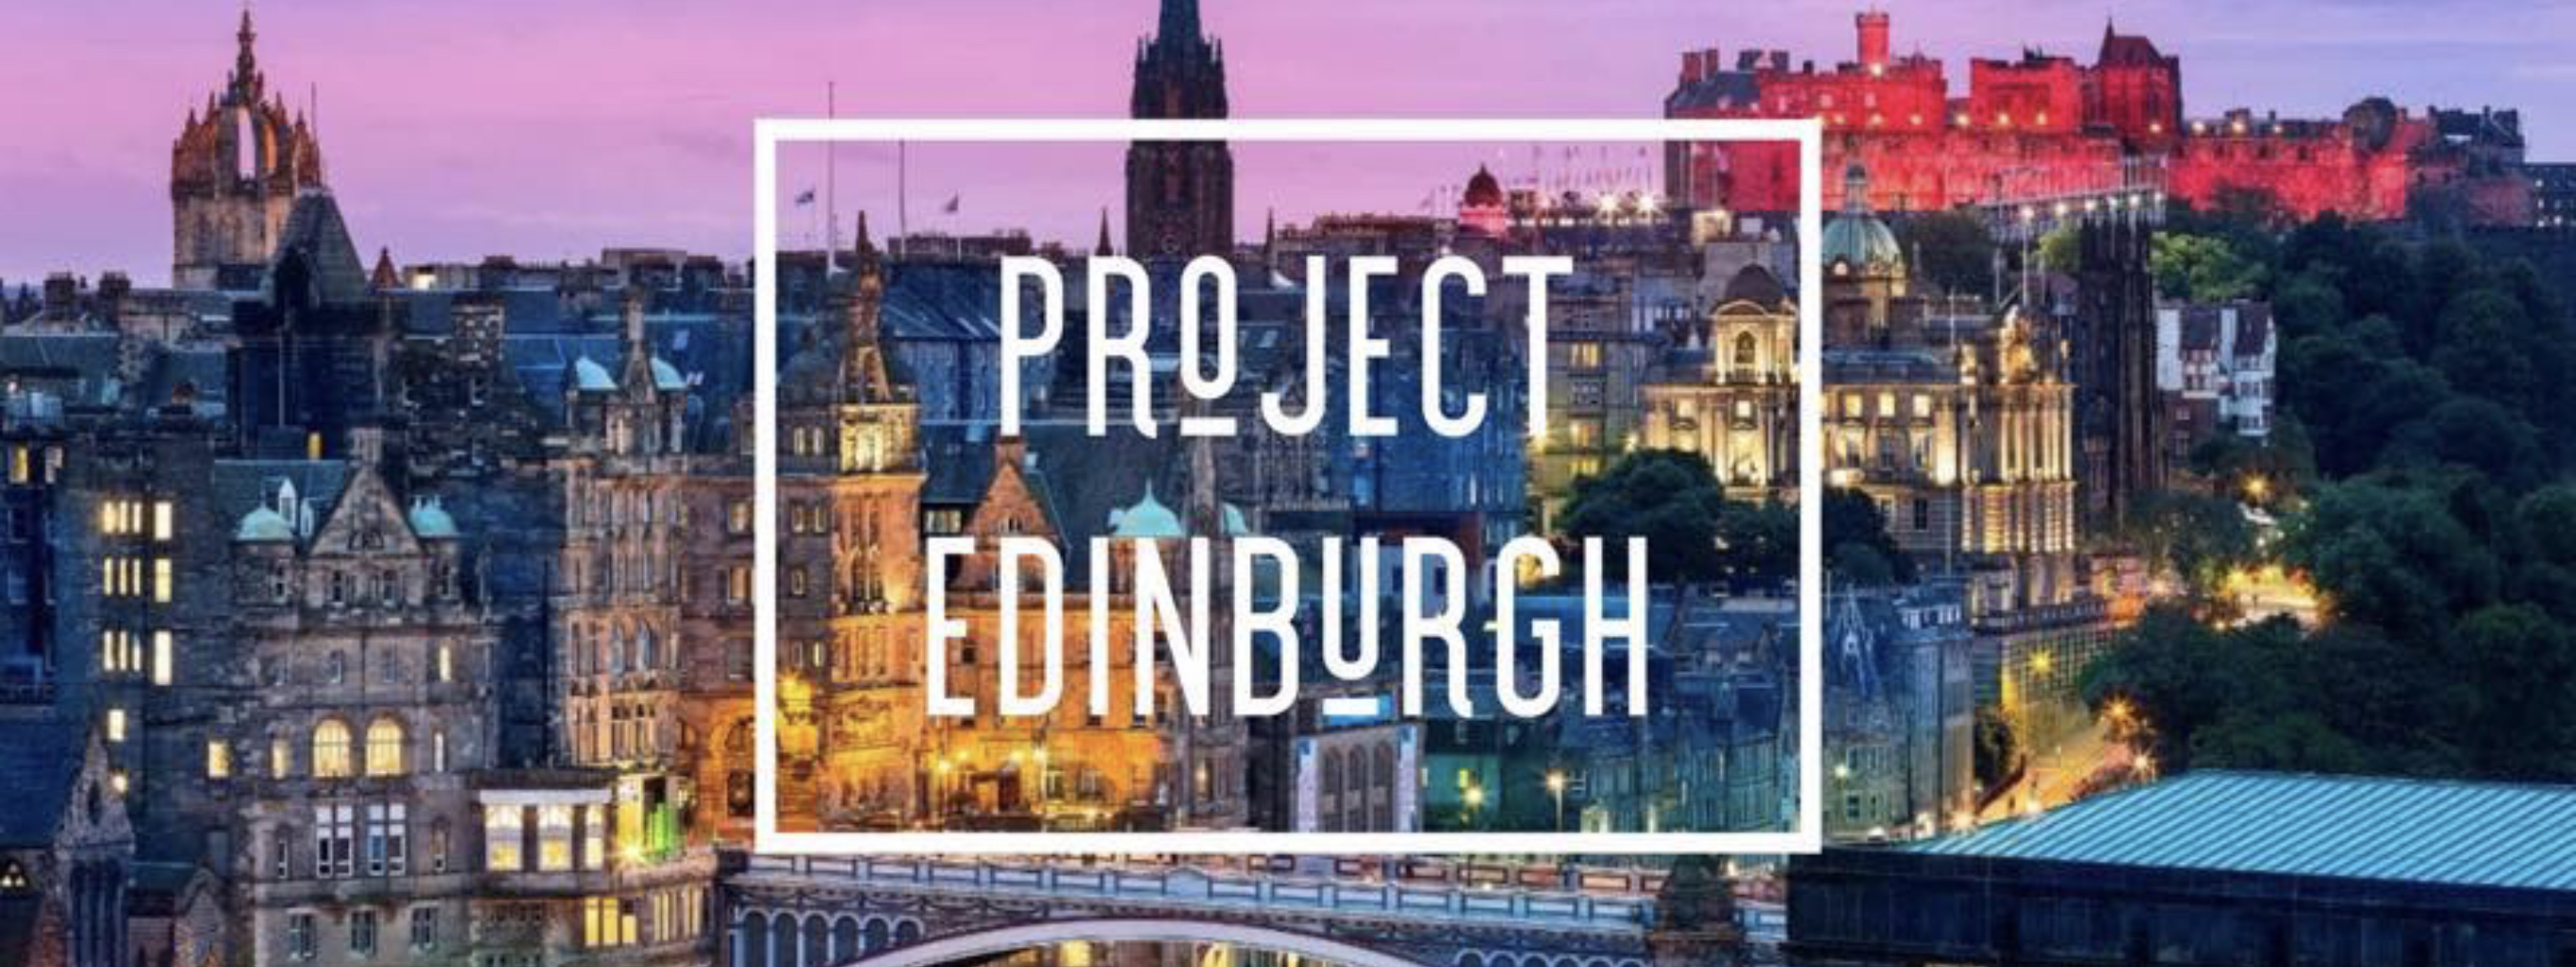 Project Edinburgh